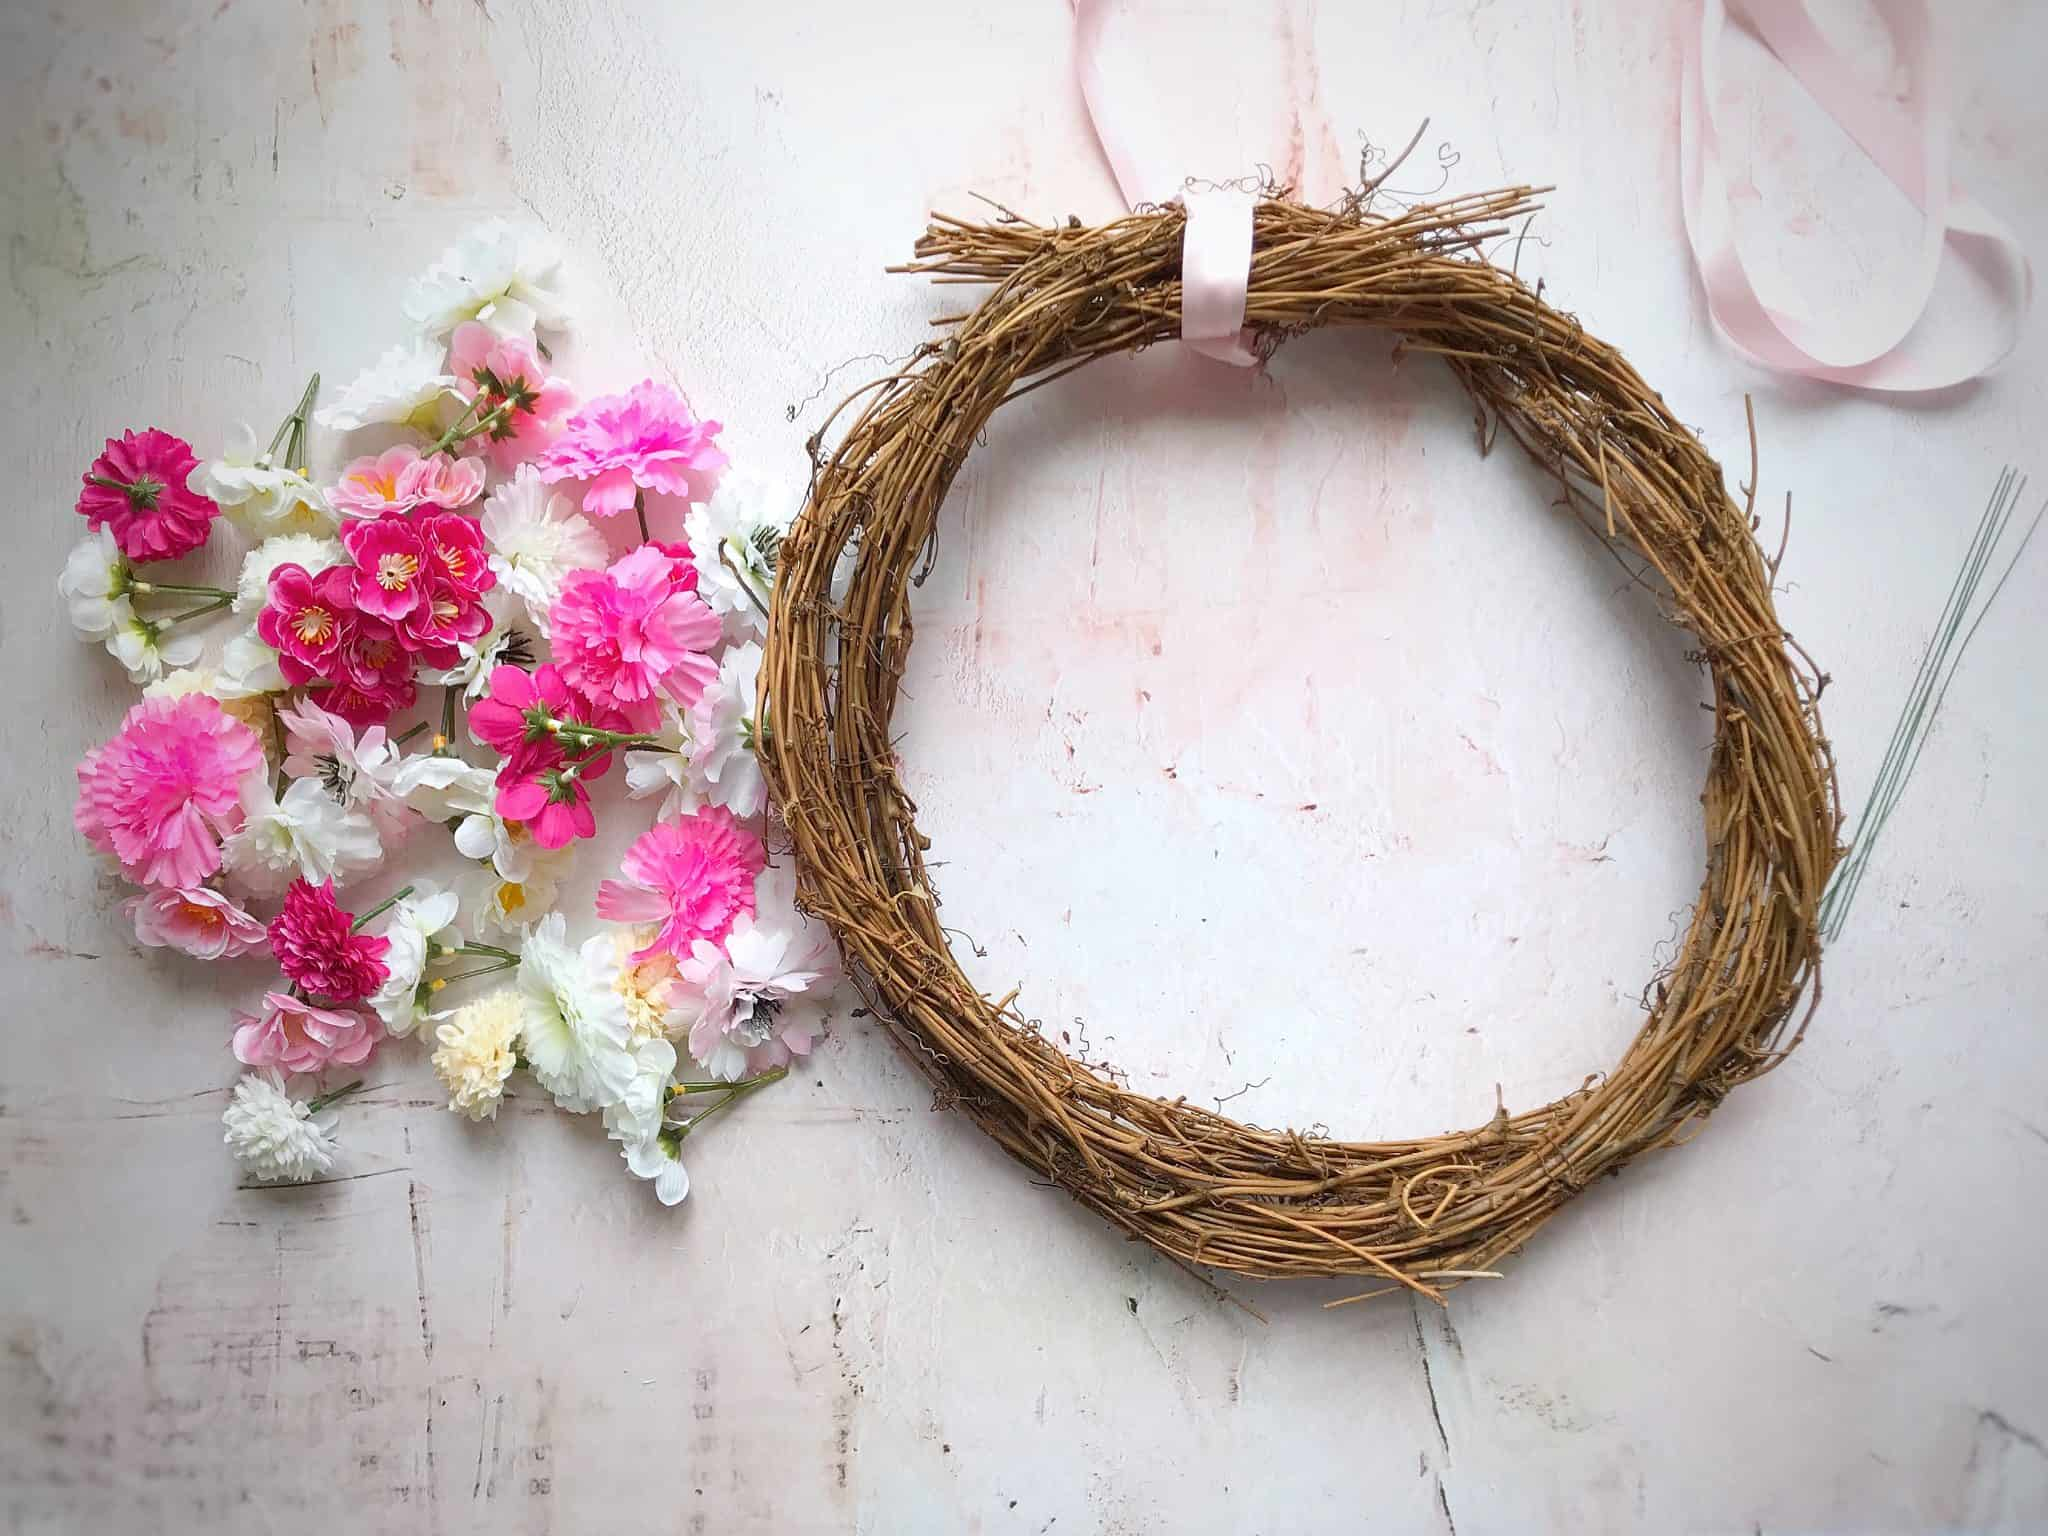 What you need to make an easy spring wreath in minutes